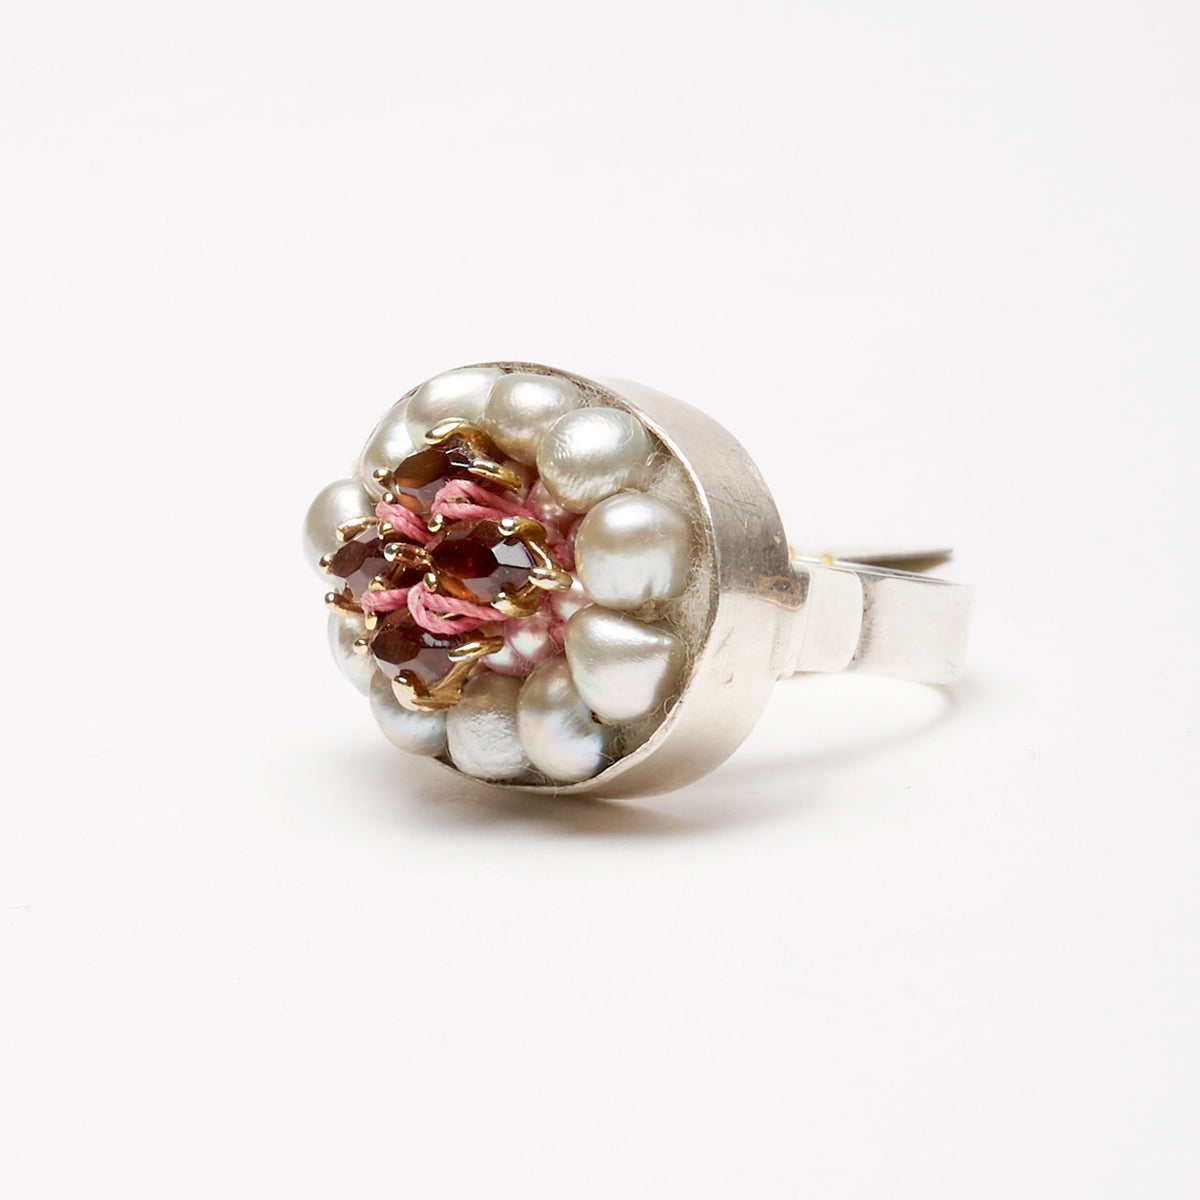 Sophia Forero Designs Arzouman Luxe Sterling Silver Ring with Faceted Tourmaline in Gold and Freshwater Pearls